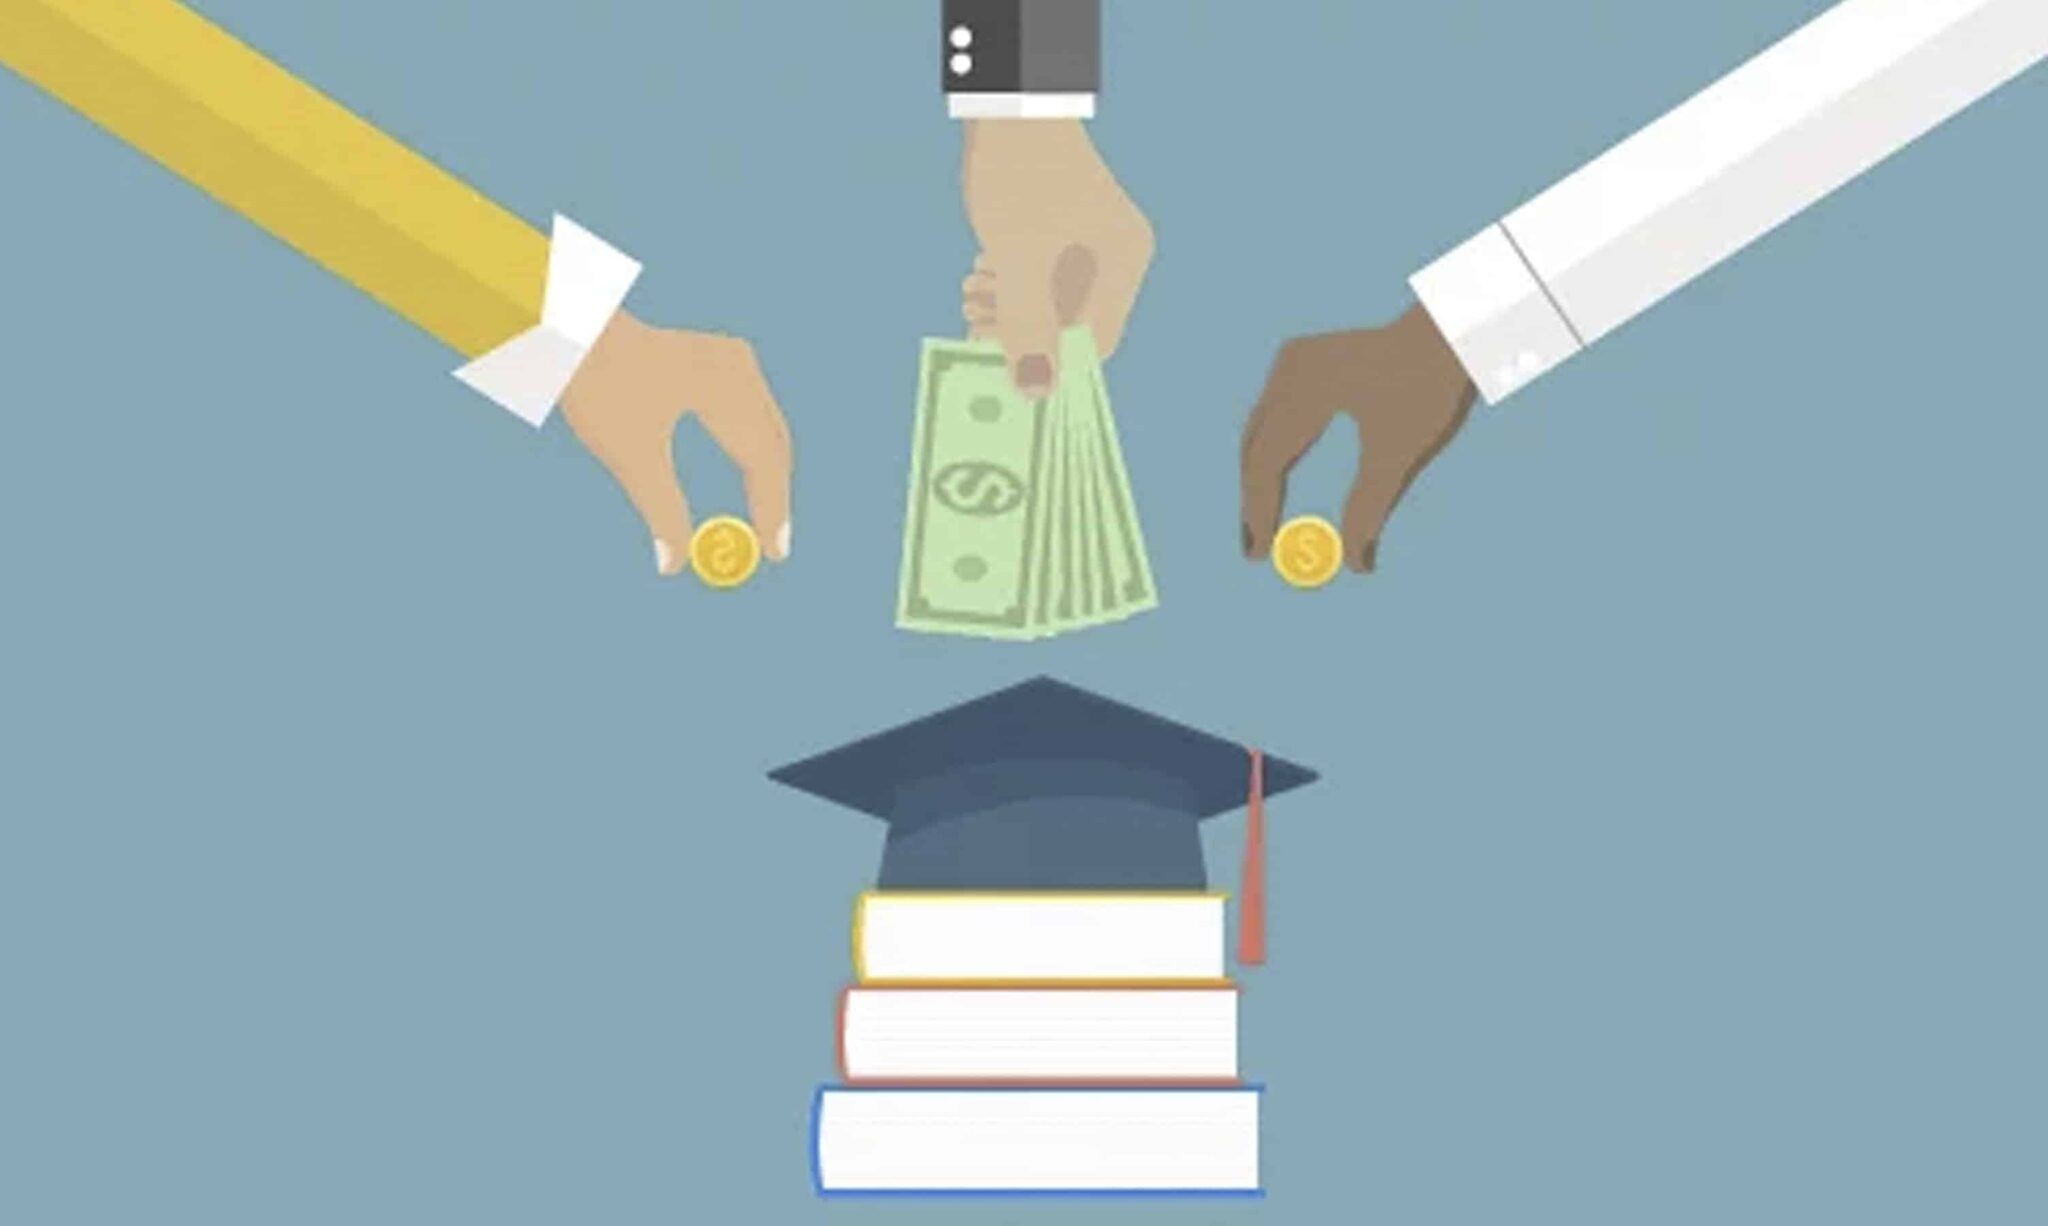 Refinance Student Loans >> The 10 Best Places To Refinance Student Loans In August 2019